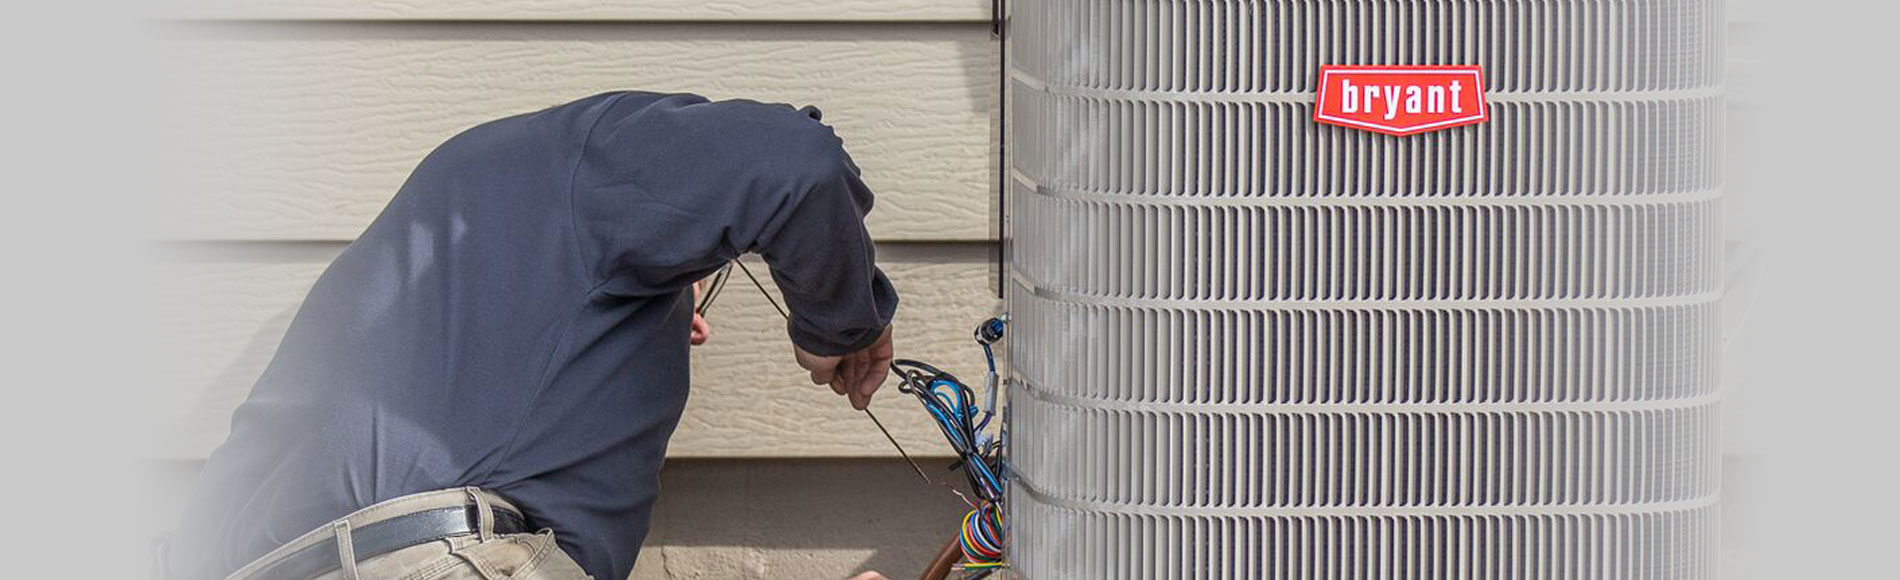 Choose Anderson Heating Furnace Service A C Repair Wiring Jobs Sc Previousnext